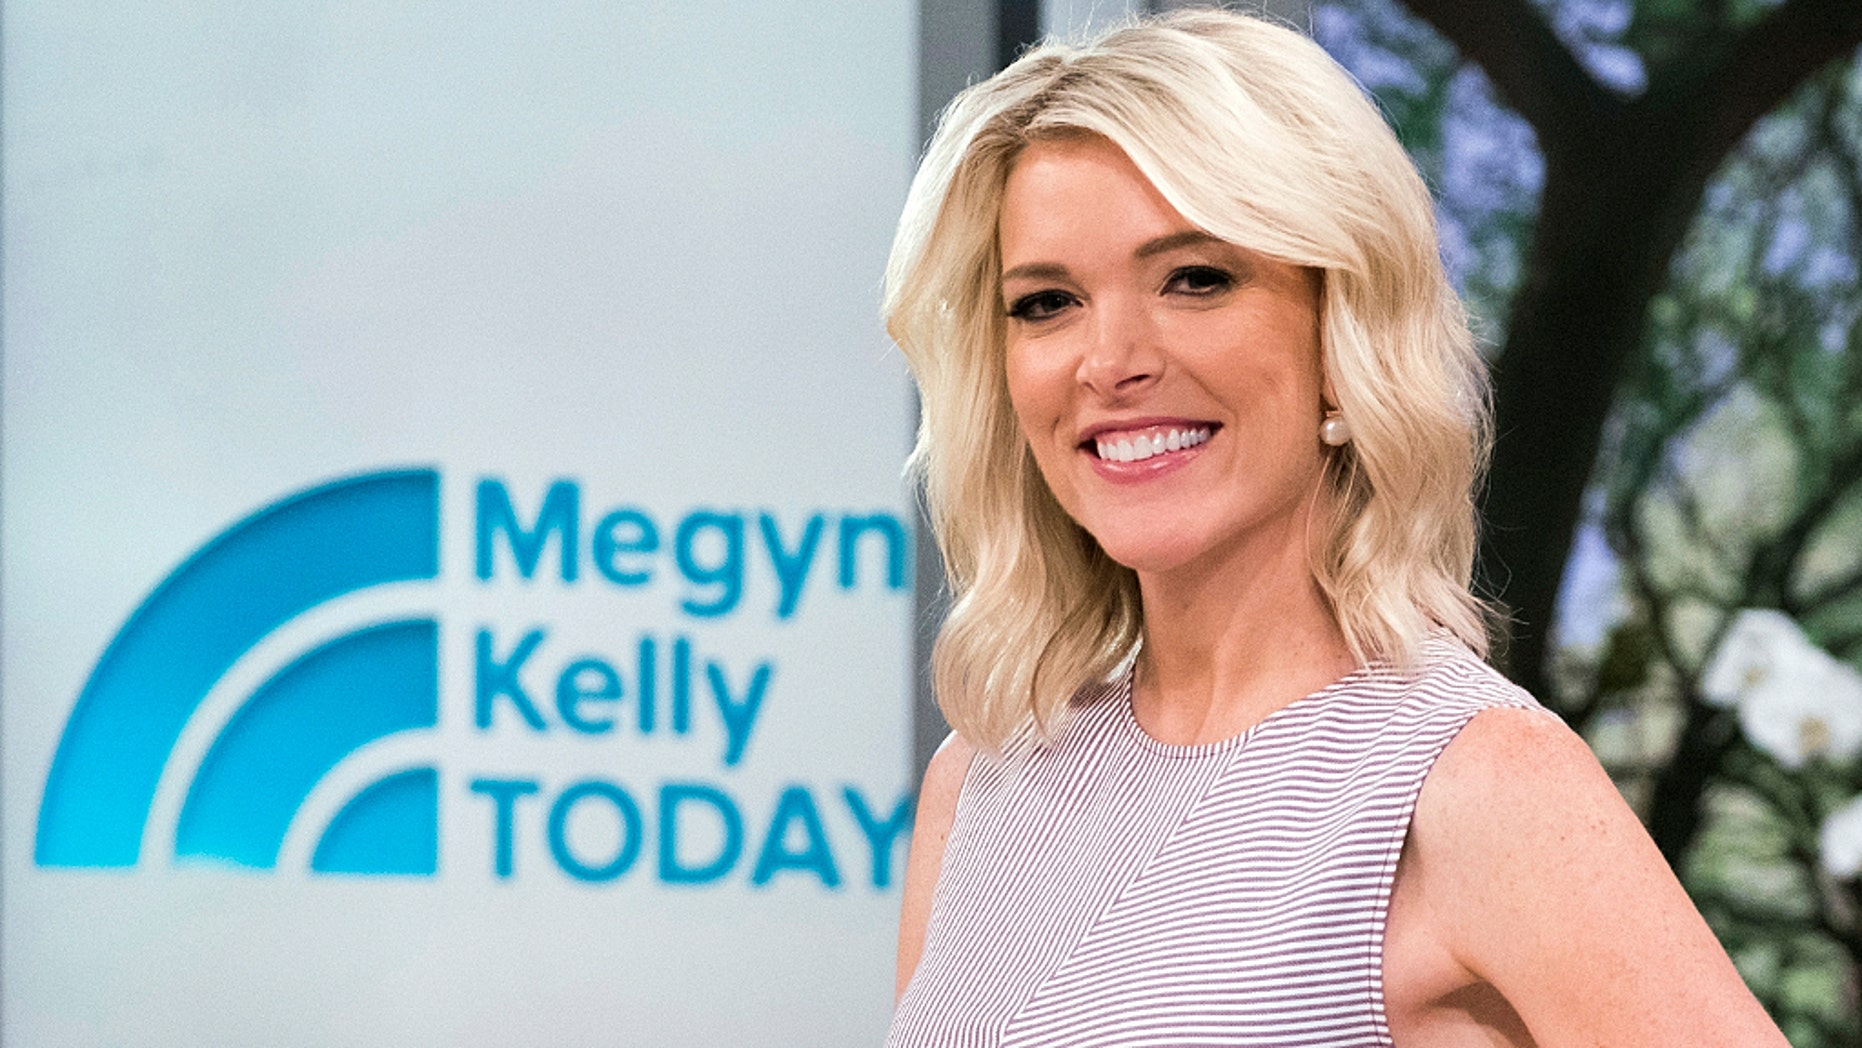 Megyn Kelly's fate at NBC was sealed when she pondered why